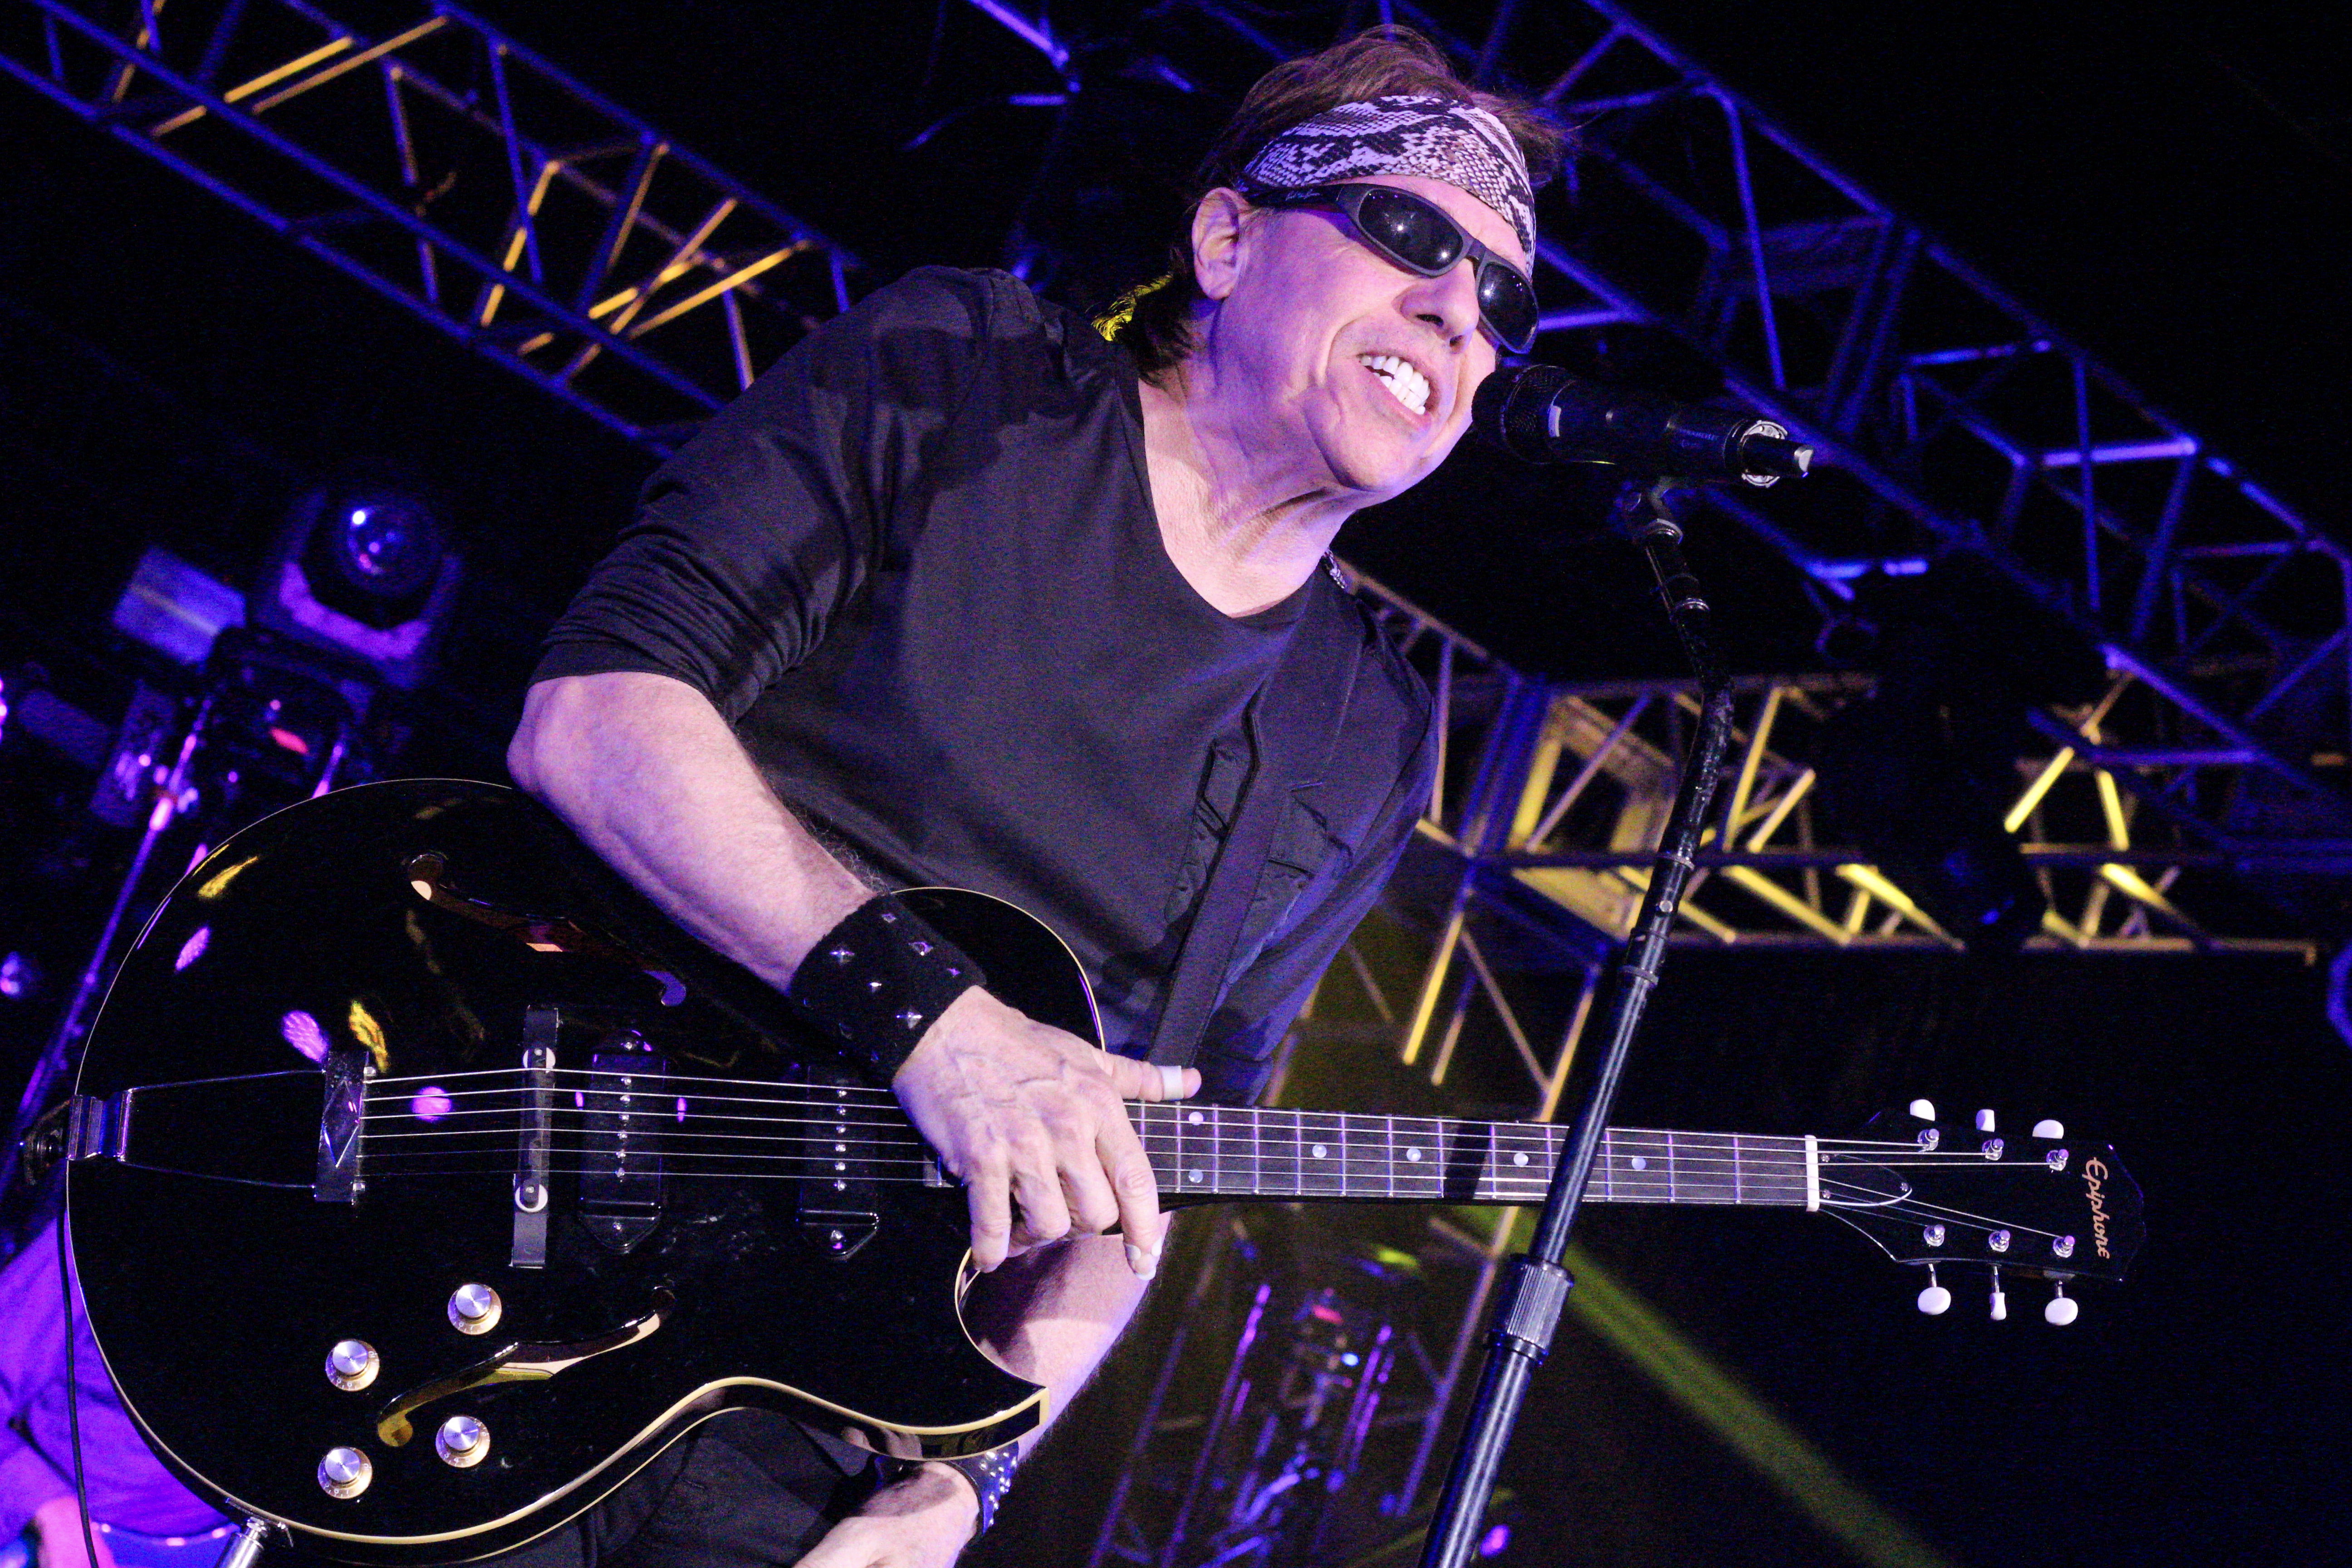 George Thorogood | Seminole Casino Coconut Creek | 10/19/18